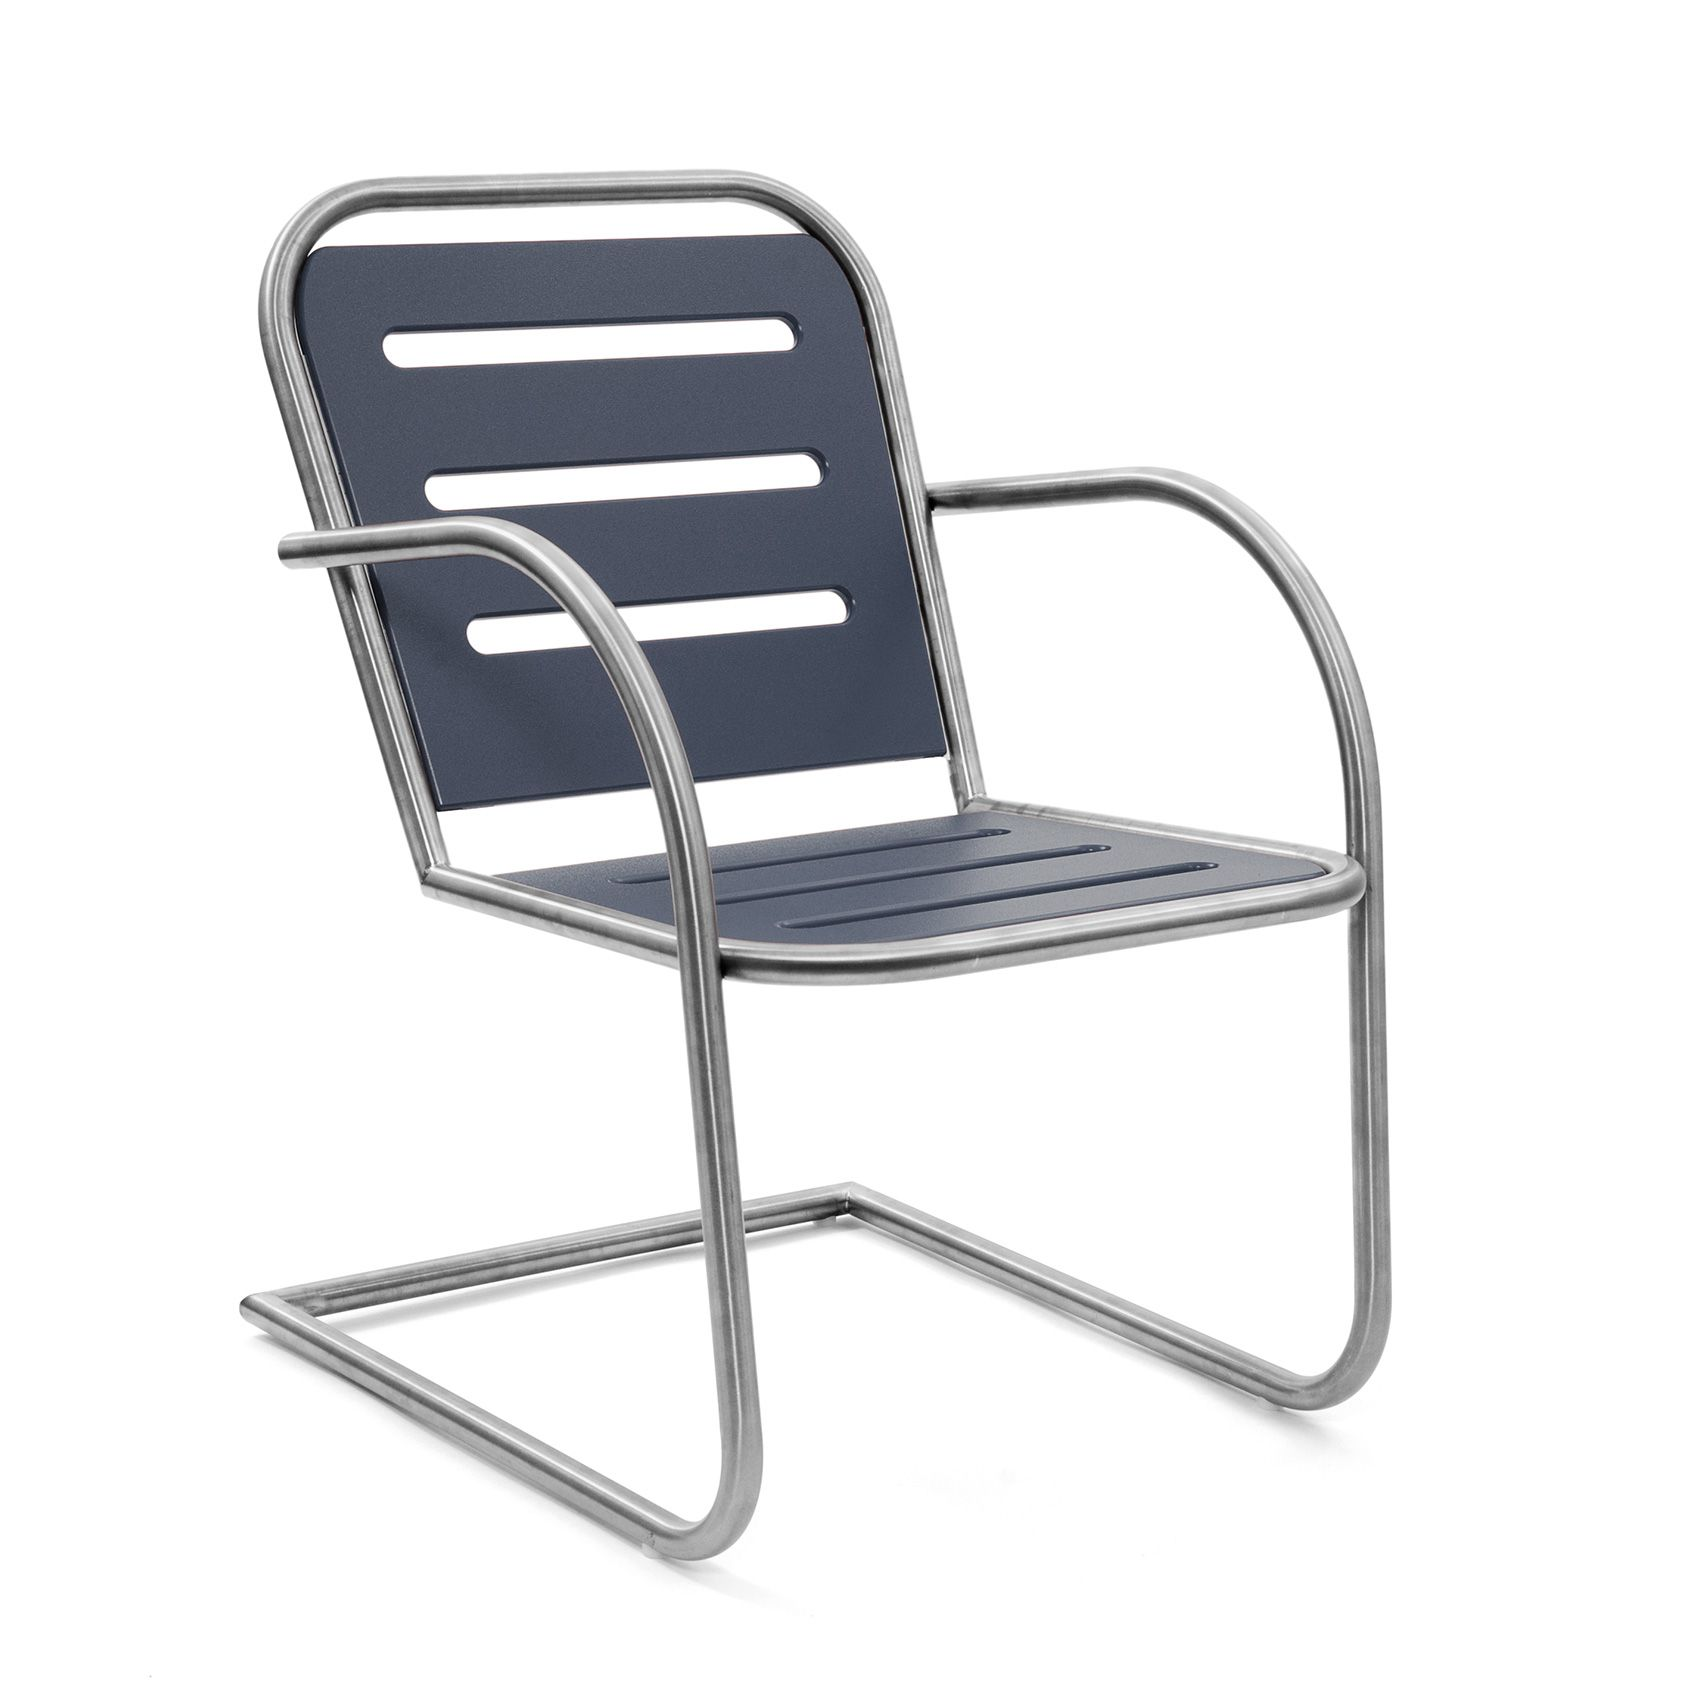 Pliny The Lounger Patio Chairs Design Outdoor Furniture